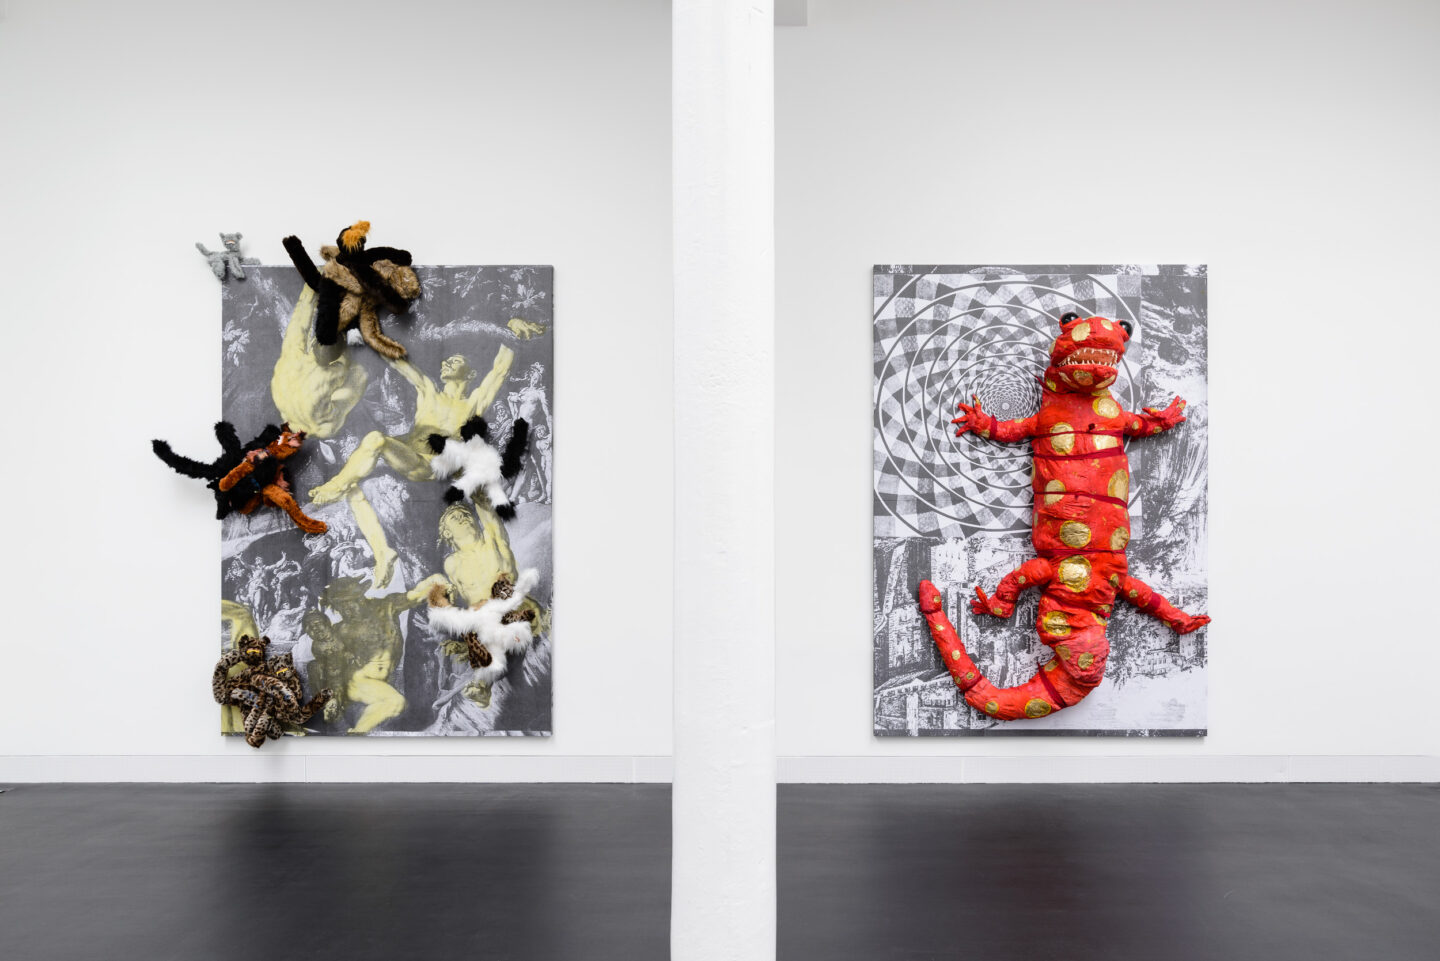 Exhibition View Monster Chetwynd Soloshow «Either This Coat's Inhabited or I'm Inhibited; view on Cat Fight (The Deluge), 2019 and Salamander, 2019» at Galerie Gregor Staiger / Courtesy: the artist and Galerie Gregor Staiger